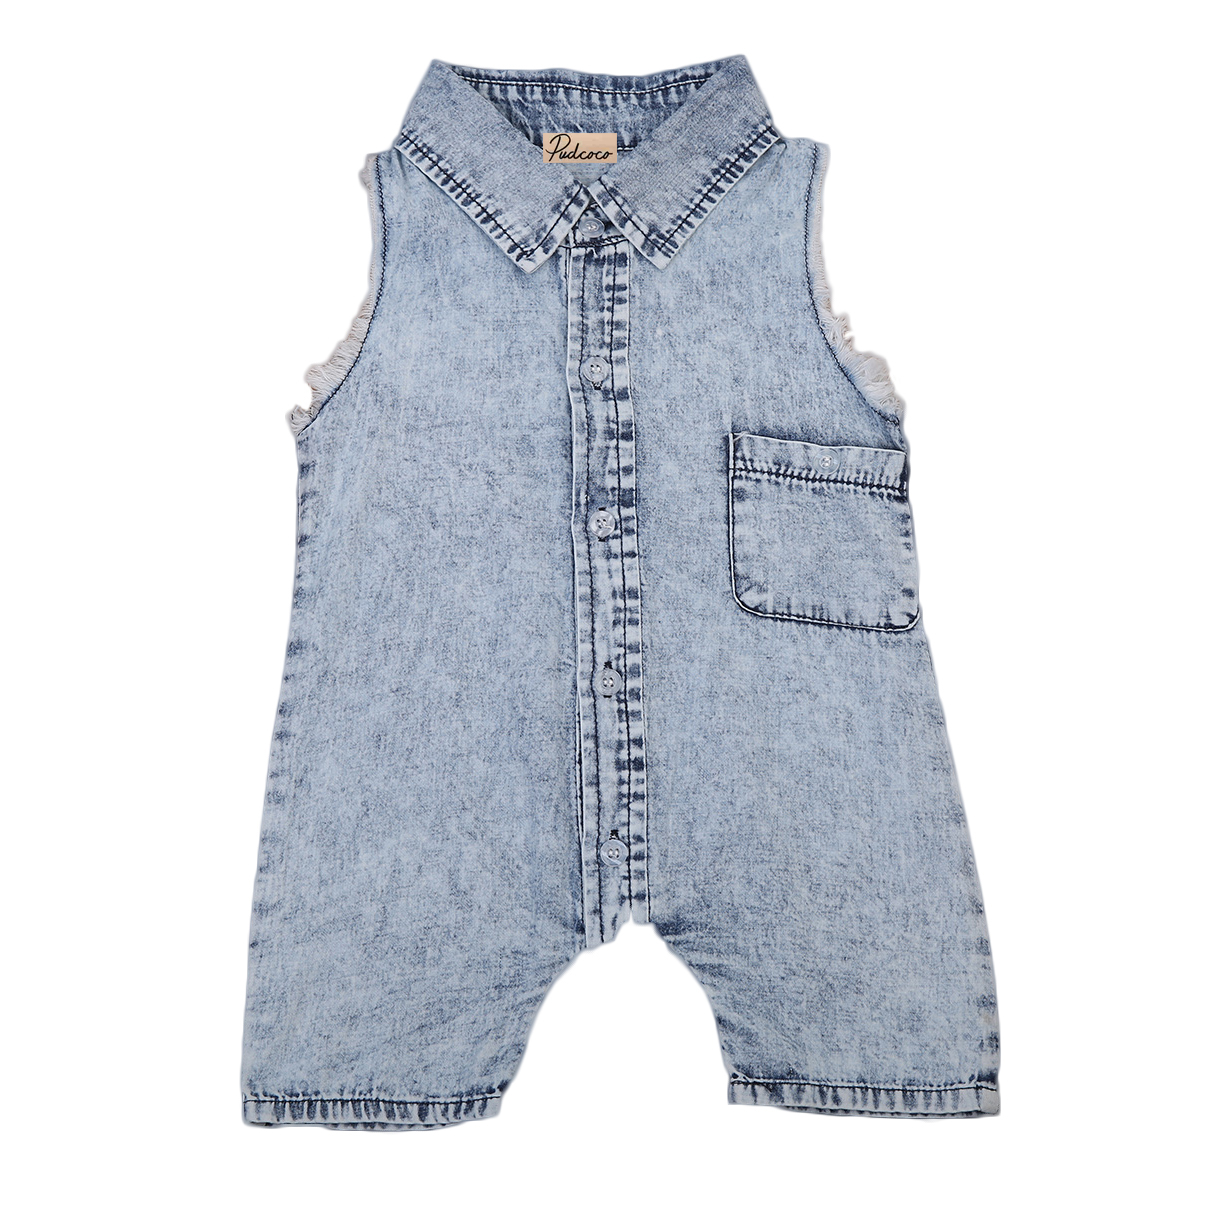 Sleeveless Newest Blue Denim Newborn Baby O-Neck Cotton Romper Infant Boys Girls Jumpsuit Clothes Outfit